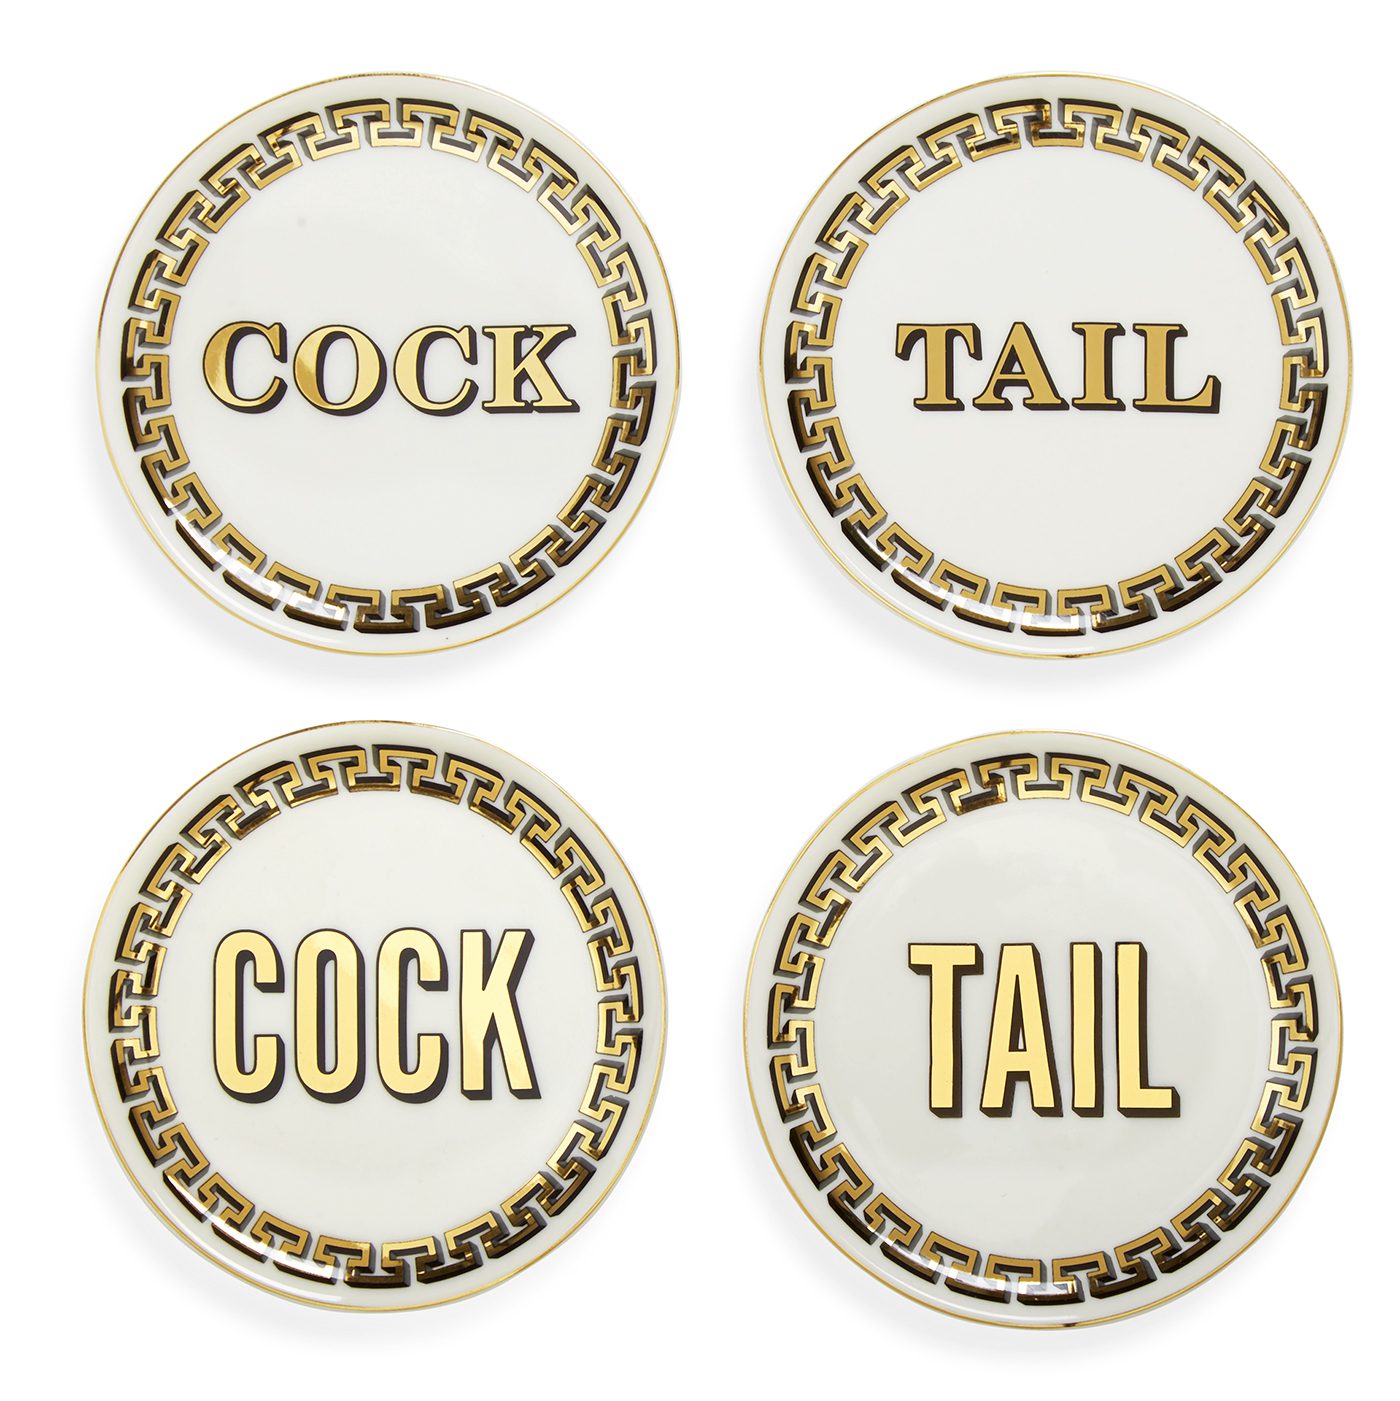 Cocktail Coasters from Jonathan Adler